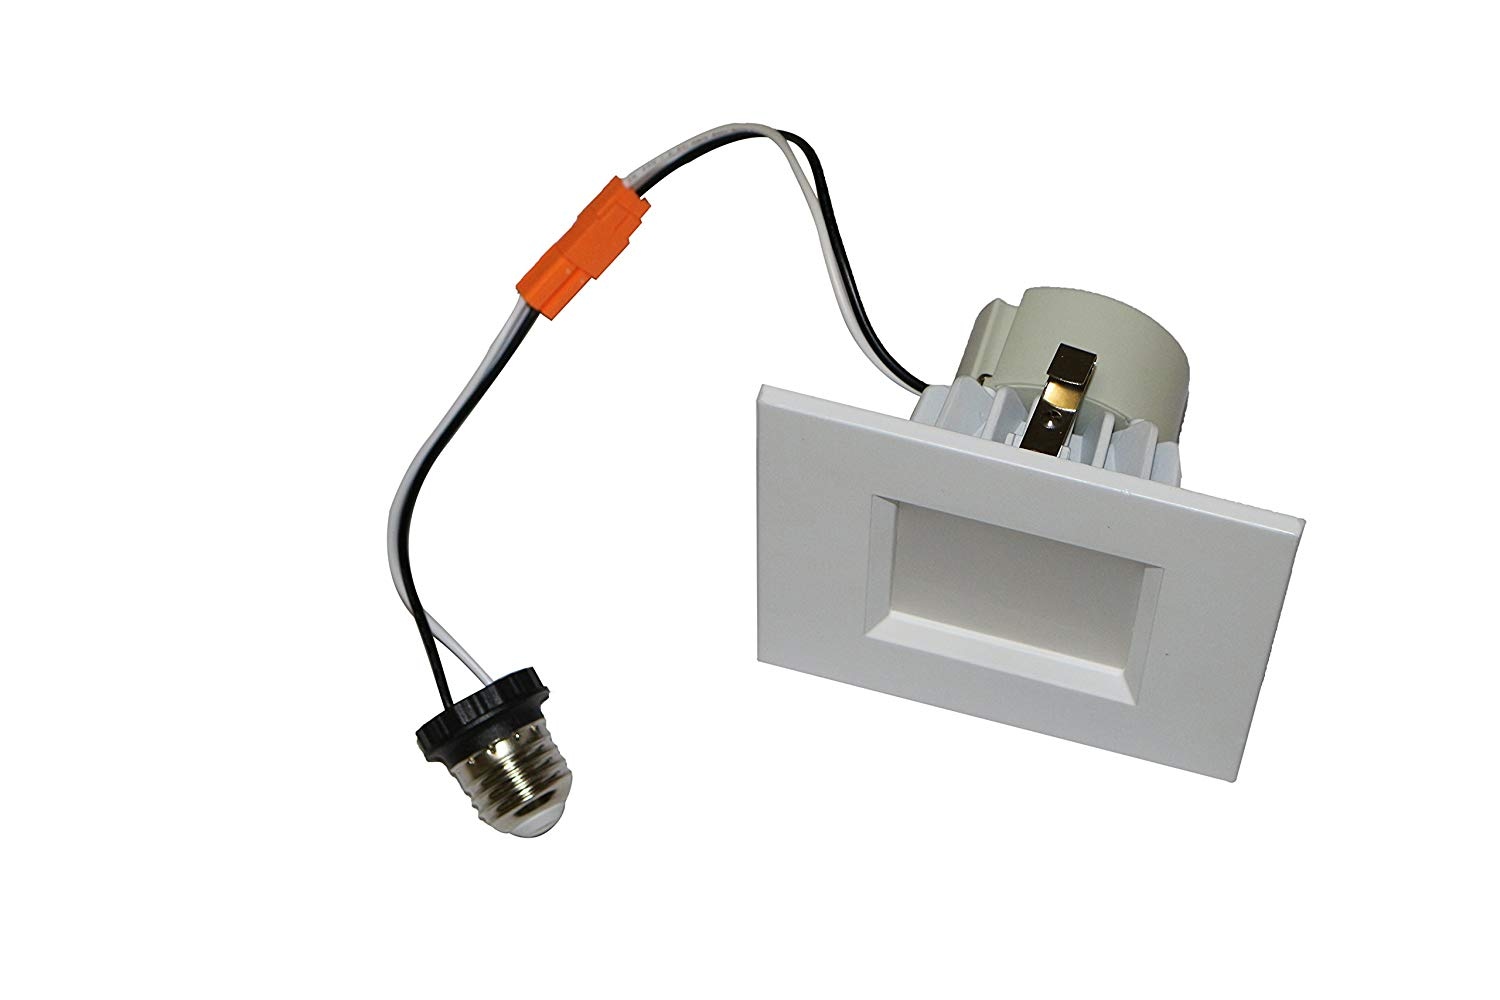 Goodlite G-19785 12w 4 inch Square LED Downlight, 3000k Warm White 75W Equivalent, Dimmable, 900 Lumens, CRI90, UL Listed, E26 Base, White-3000k